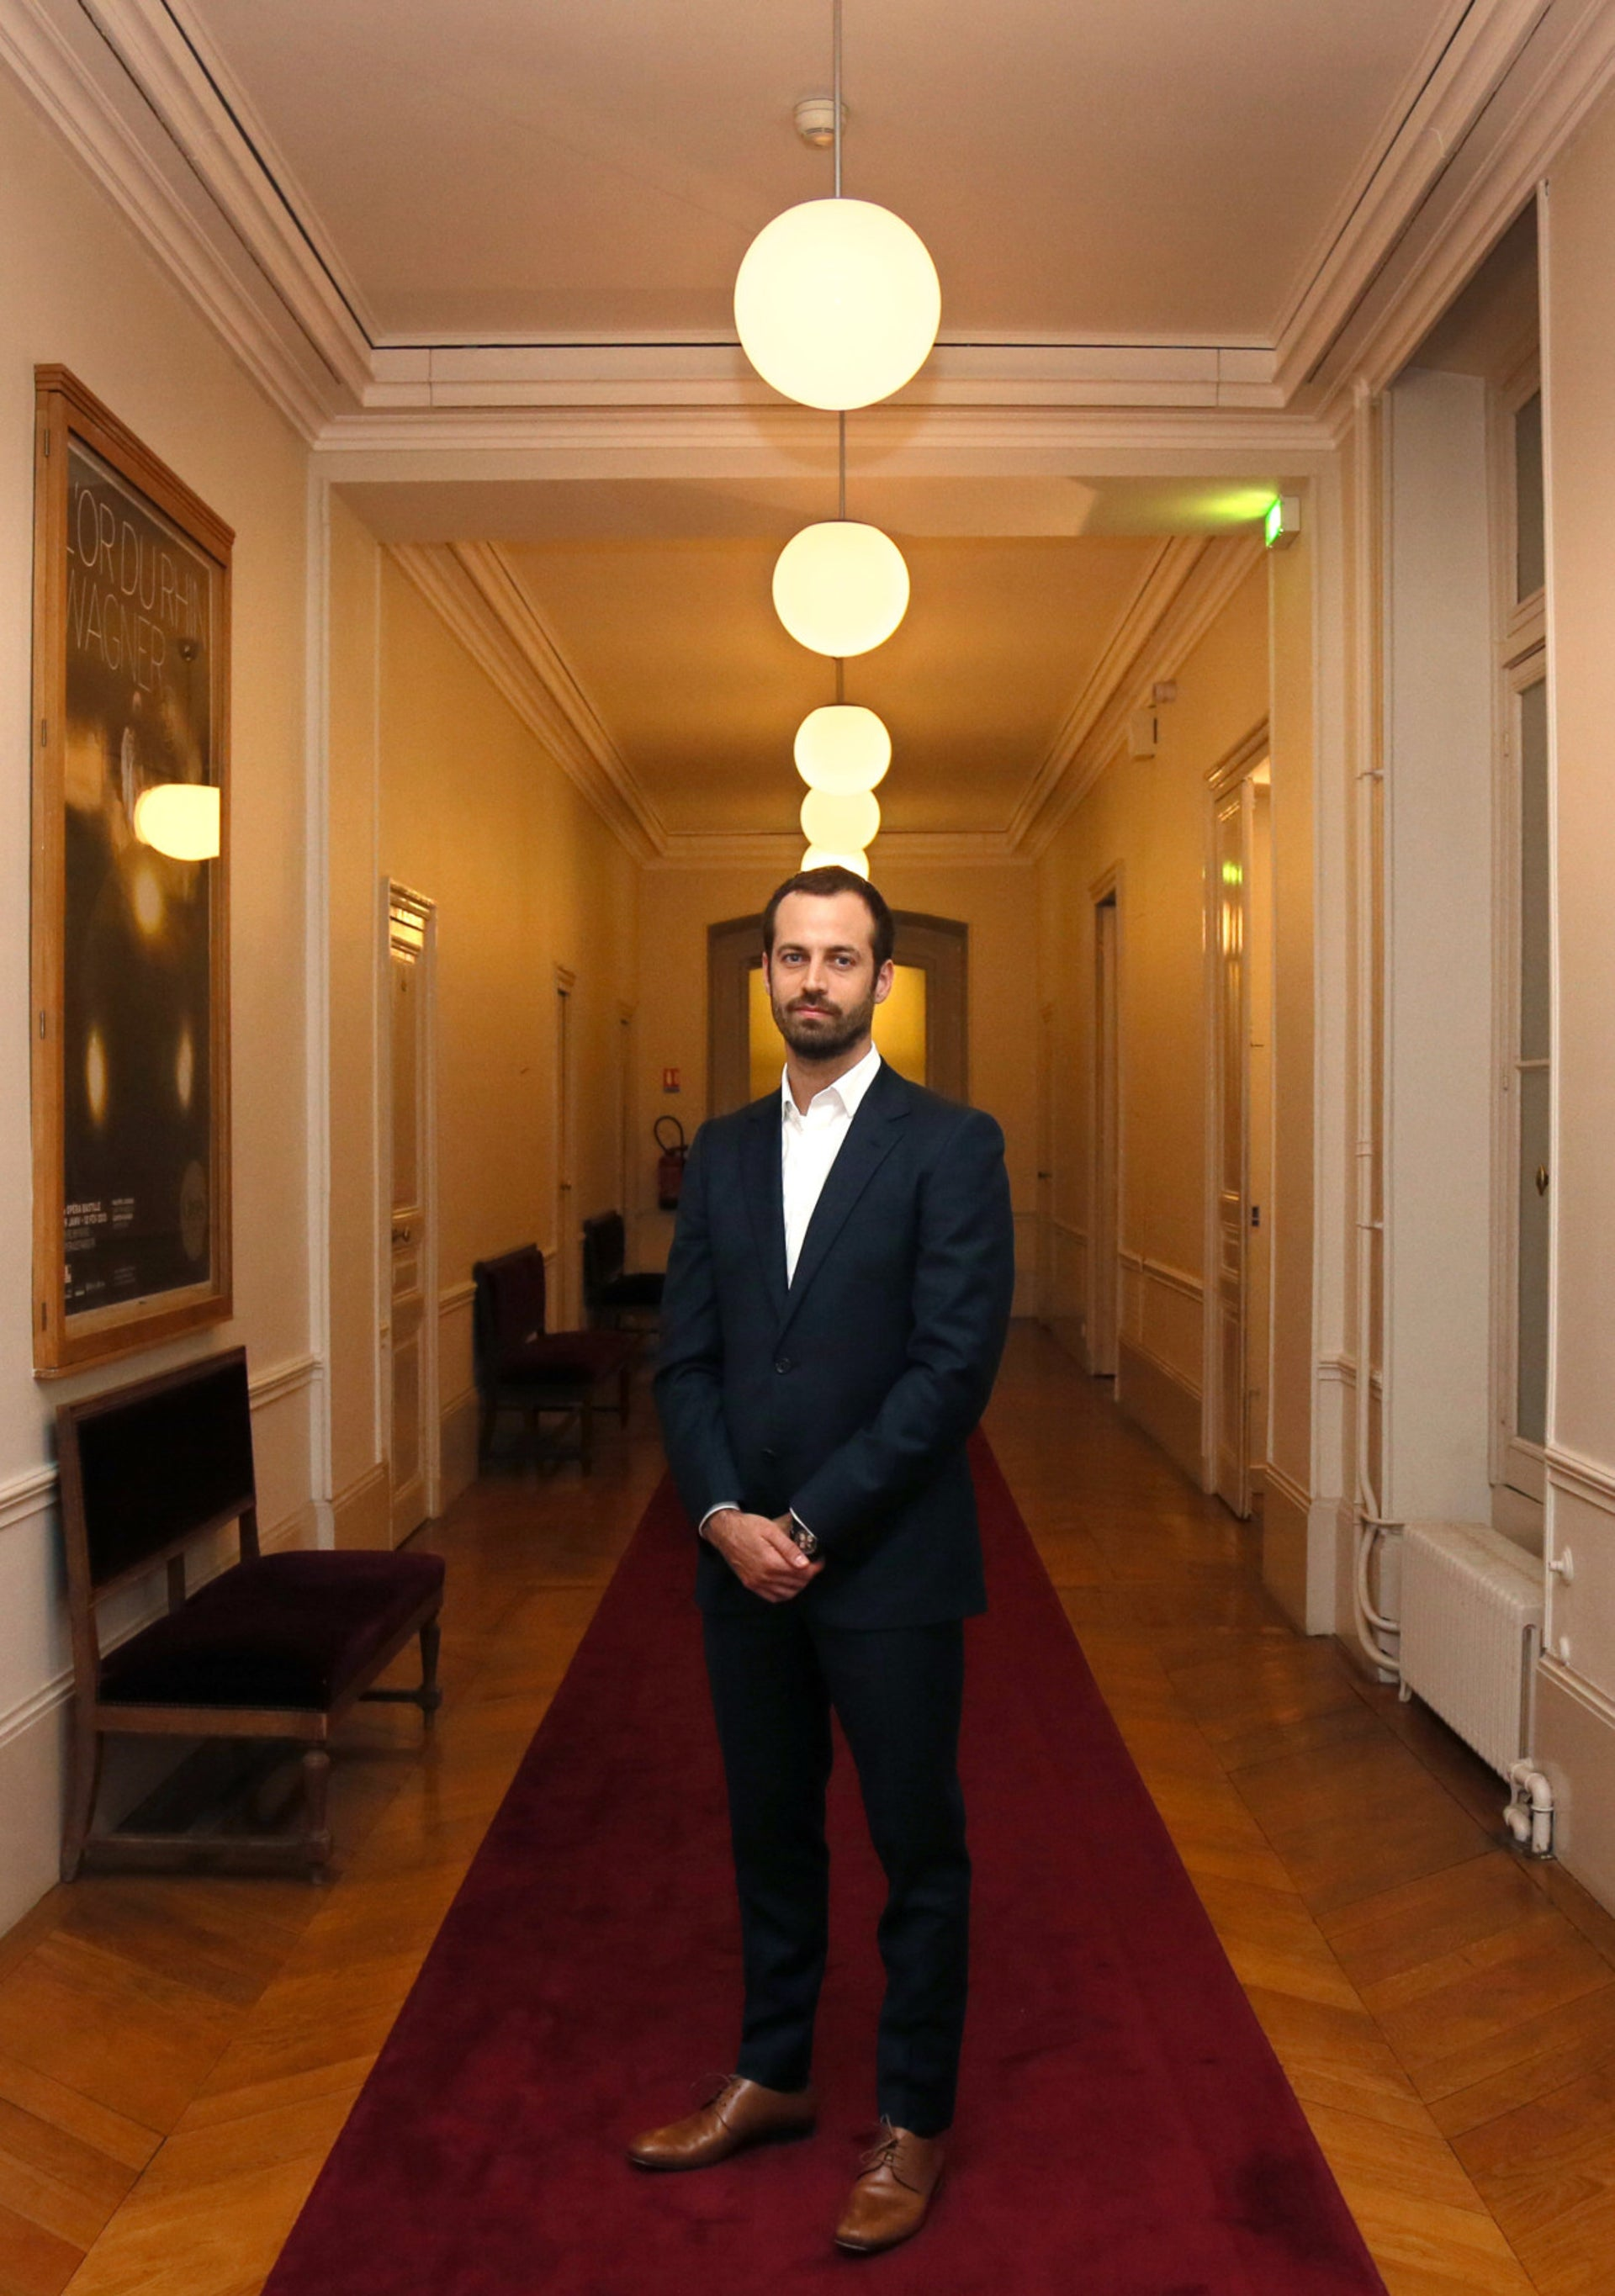 Benjamin Millepied says he's 'not going to stop performing art in any place in which it's needed'